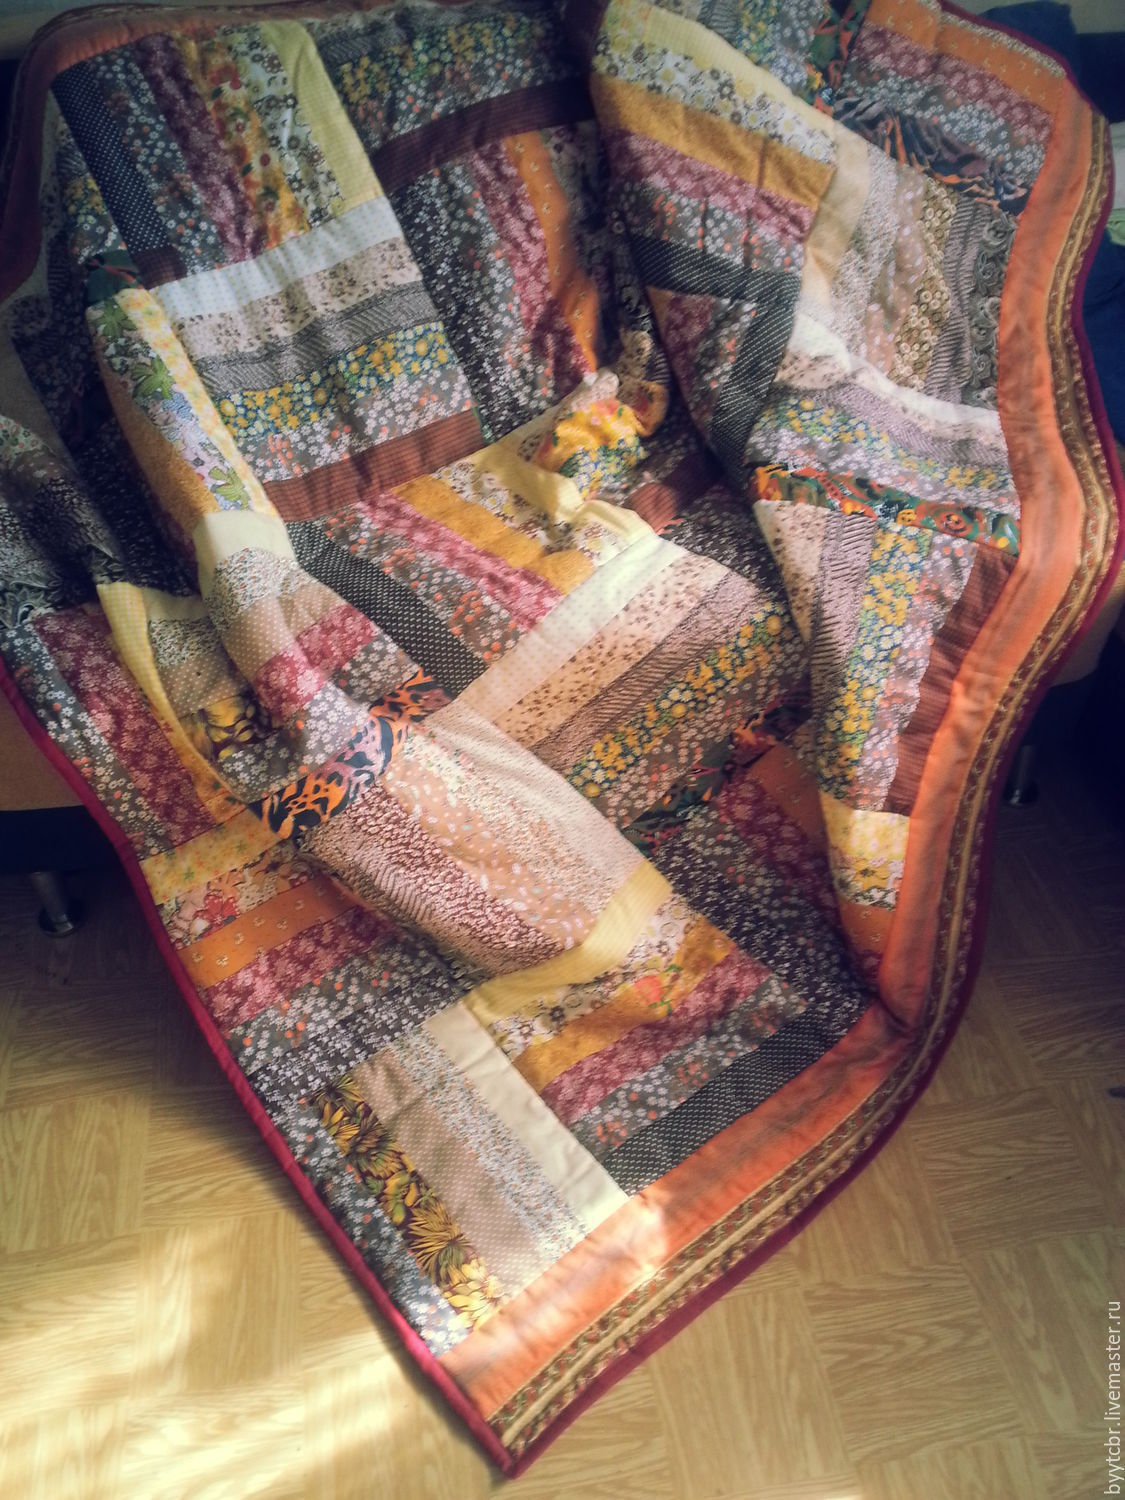 Bedspread on the bed in the bedroom PAINT SEPTEMBER patchwork bedspread, Blankets, Moscow,  Фото №1